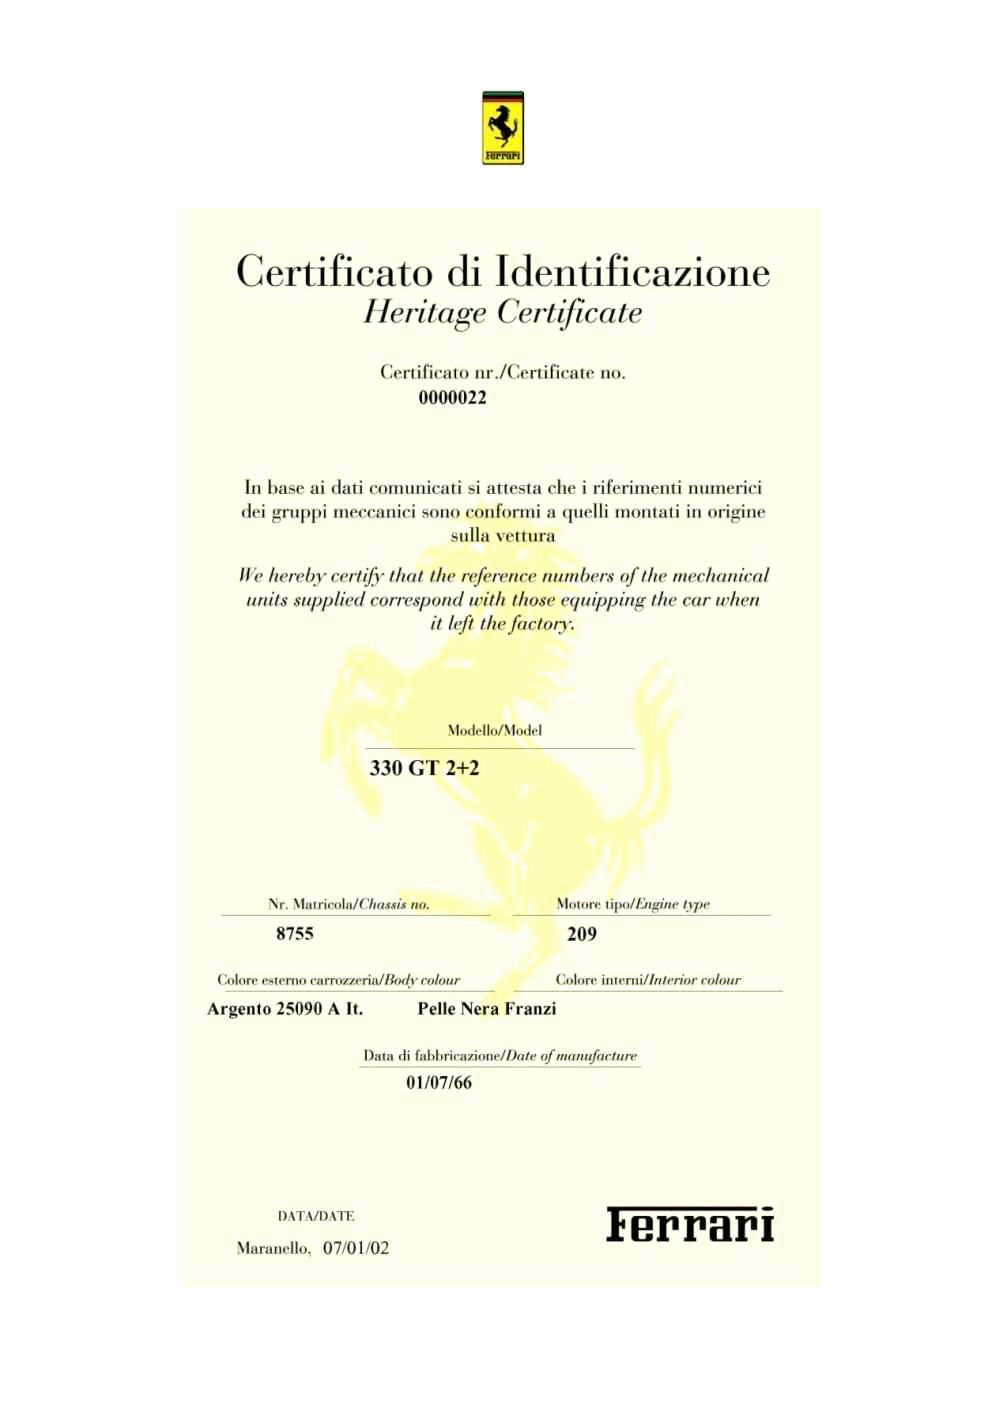 Size Of Certificate Paper New Certificate Paper Size Template Update234 Template